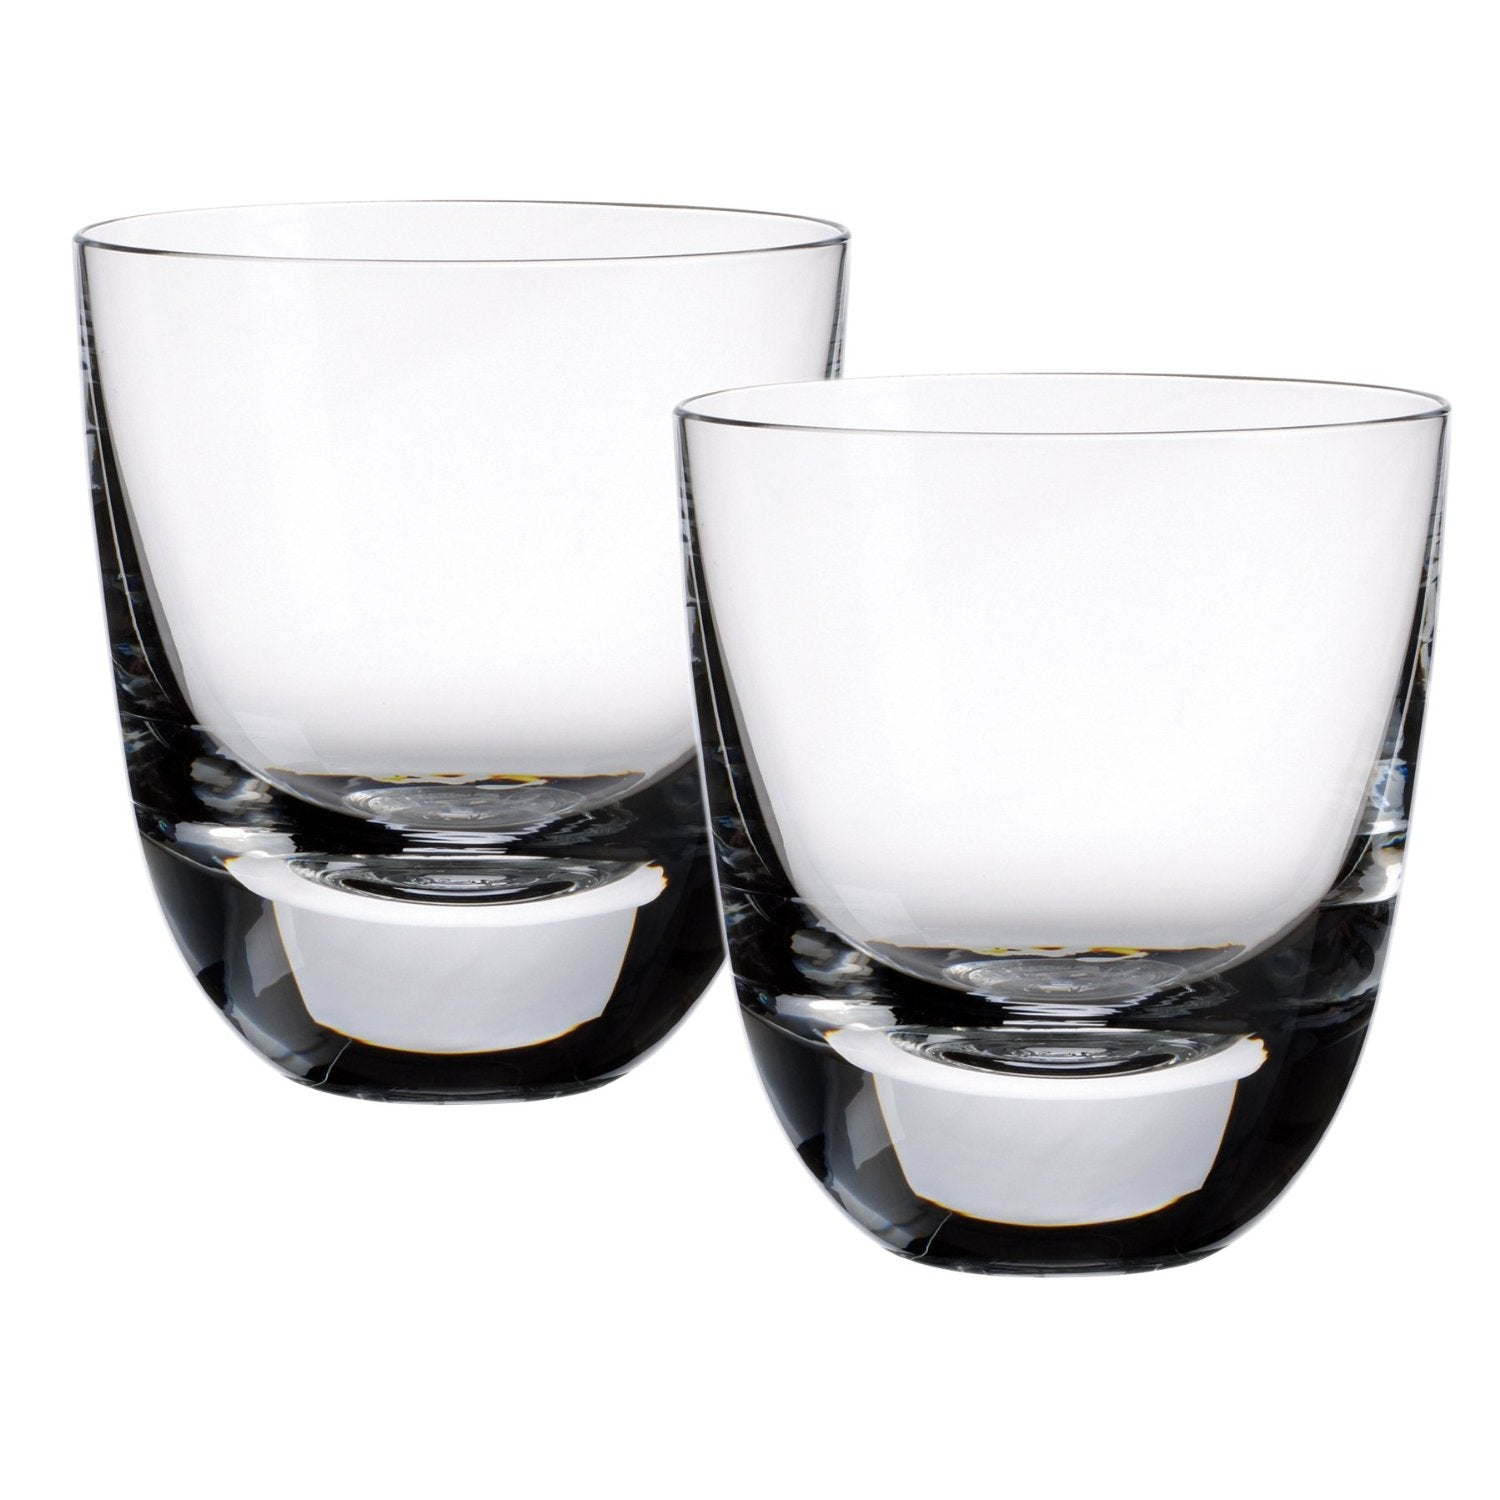 Villeroy & Boch American Bar Straight Bourbon 3-1/2 Inch Cocktail Tumbler, Set of 2